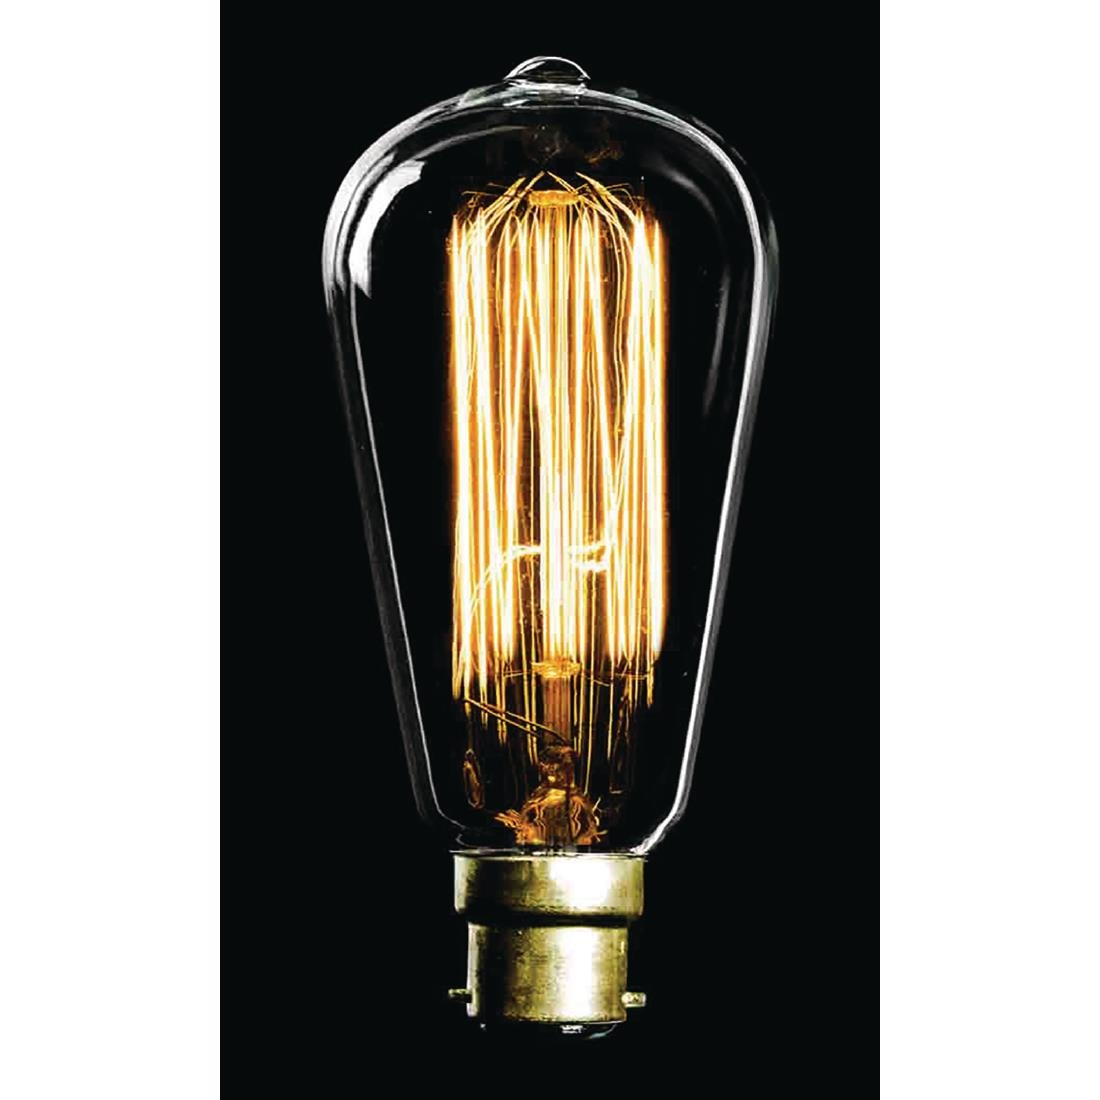 Image of Crystalite CFL Antique Squirrel Cage GLS Bulb Bayonet Cap 60W